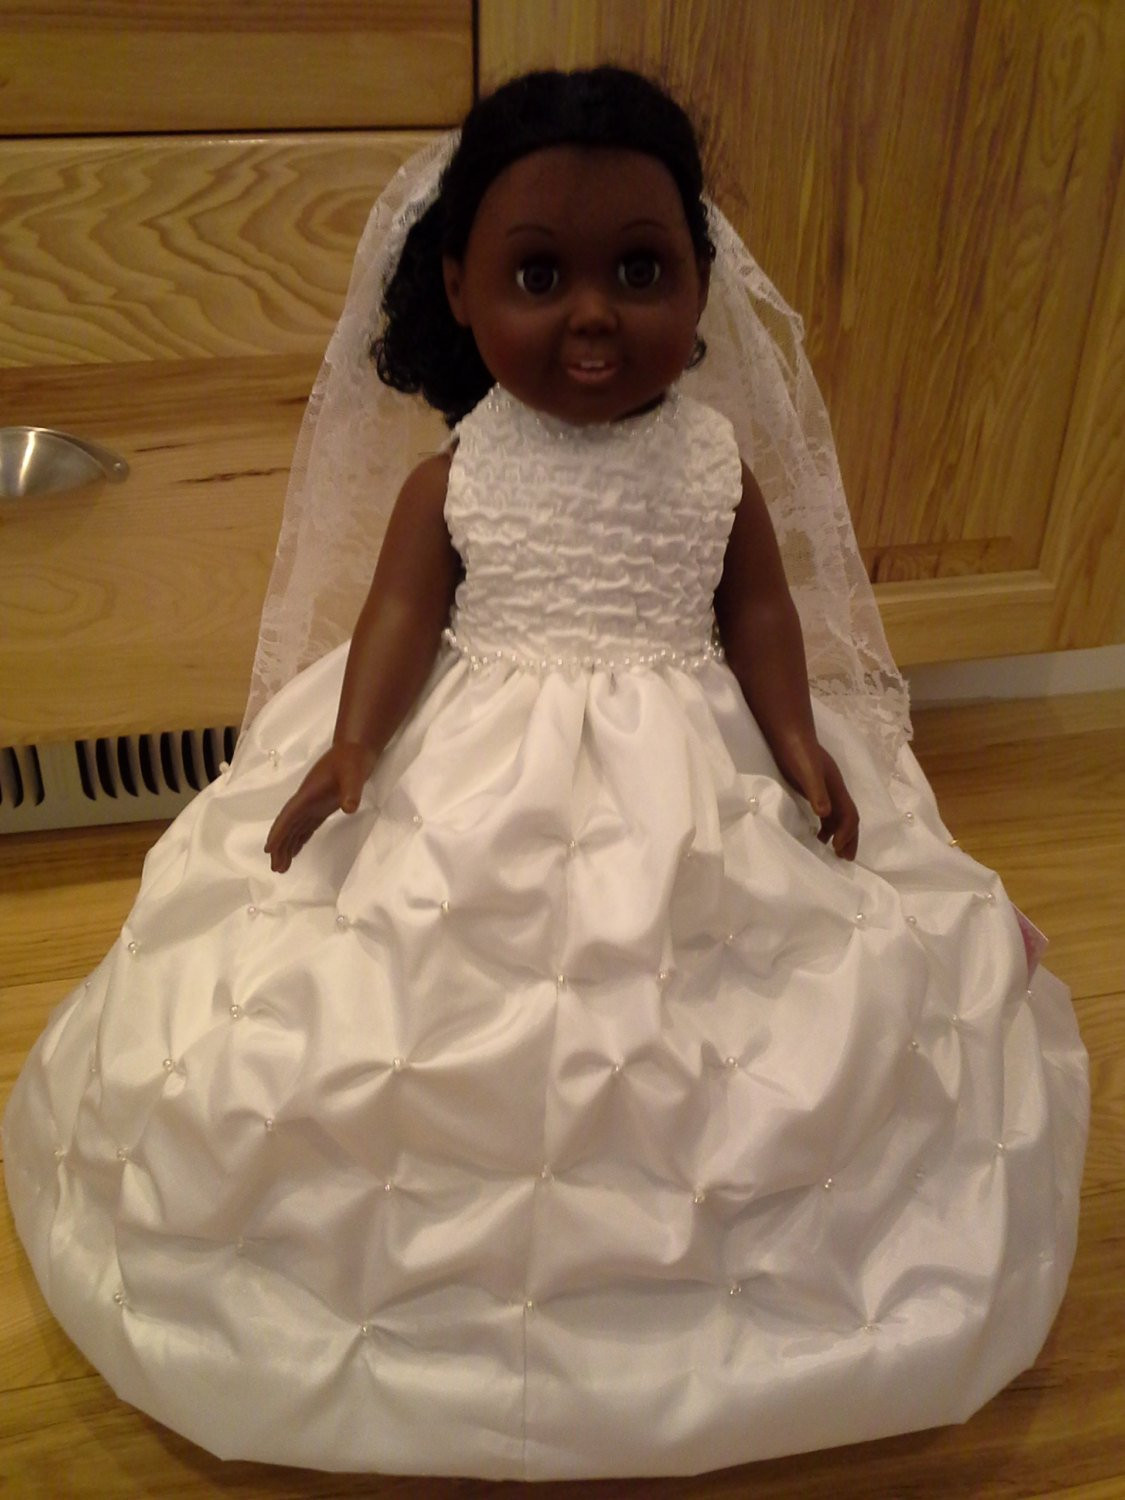 Elegant Doll Wedding Gown and Veil American Girl Doll American Girl Doll Wedding Dress Of Inspirational 2015 Romantic Wedding Dress Clothing for Dolls Mini White American Girl Doll Wedding Dress